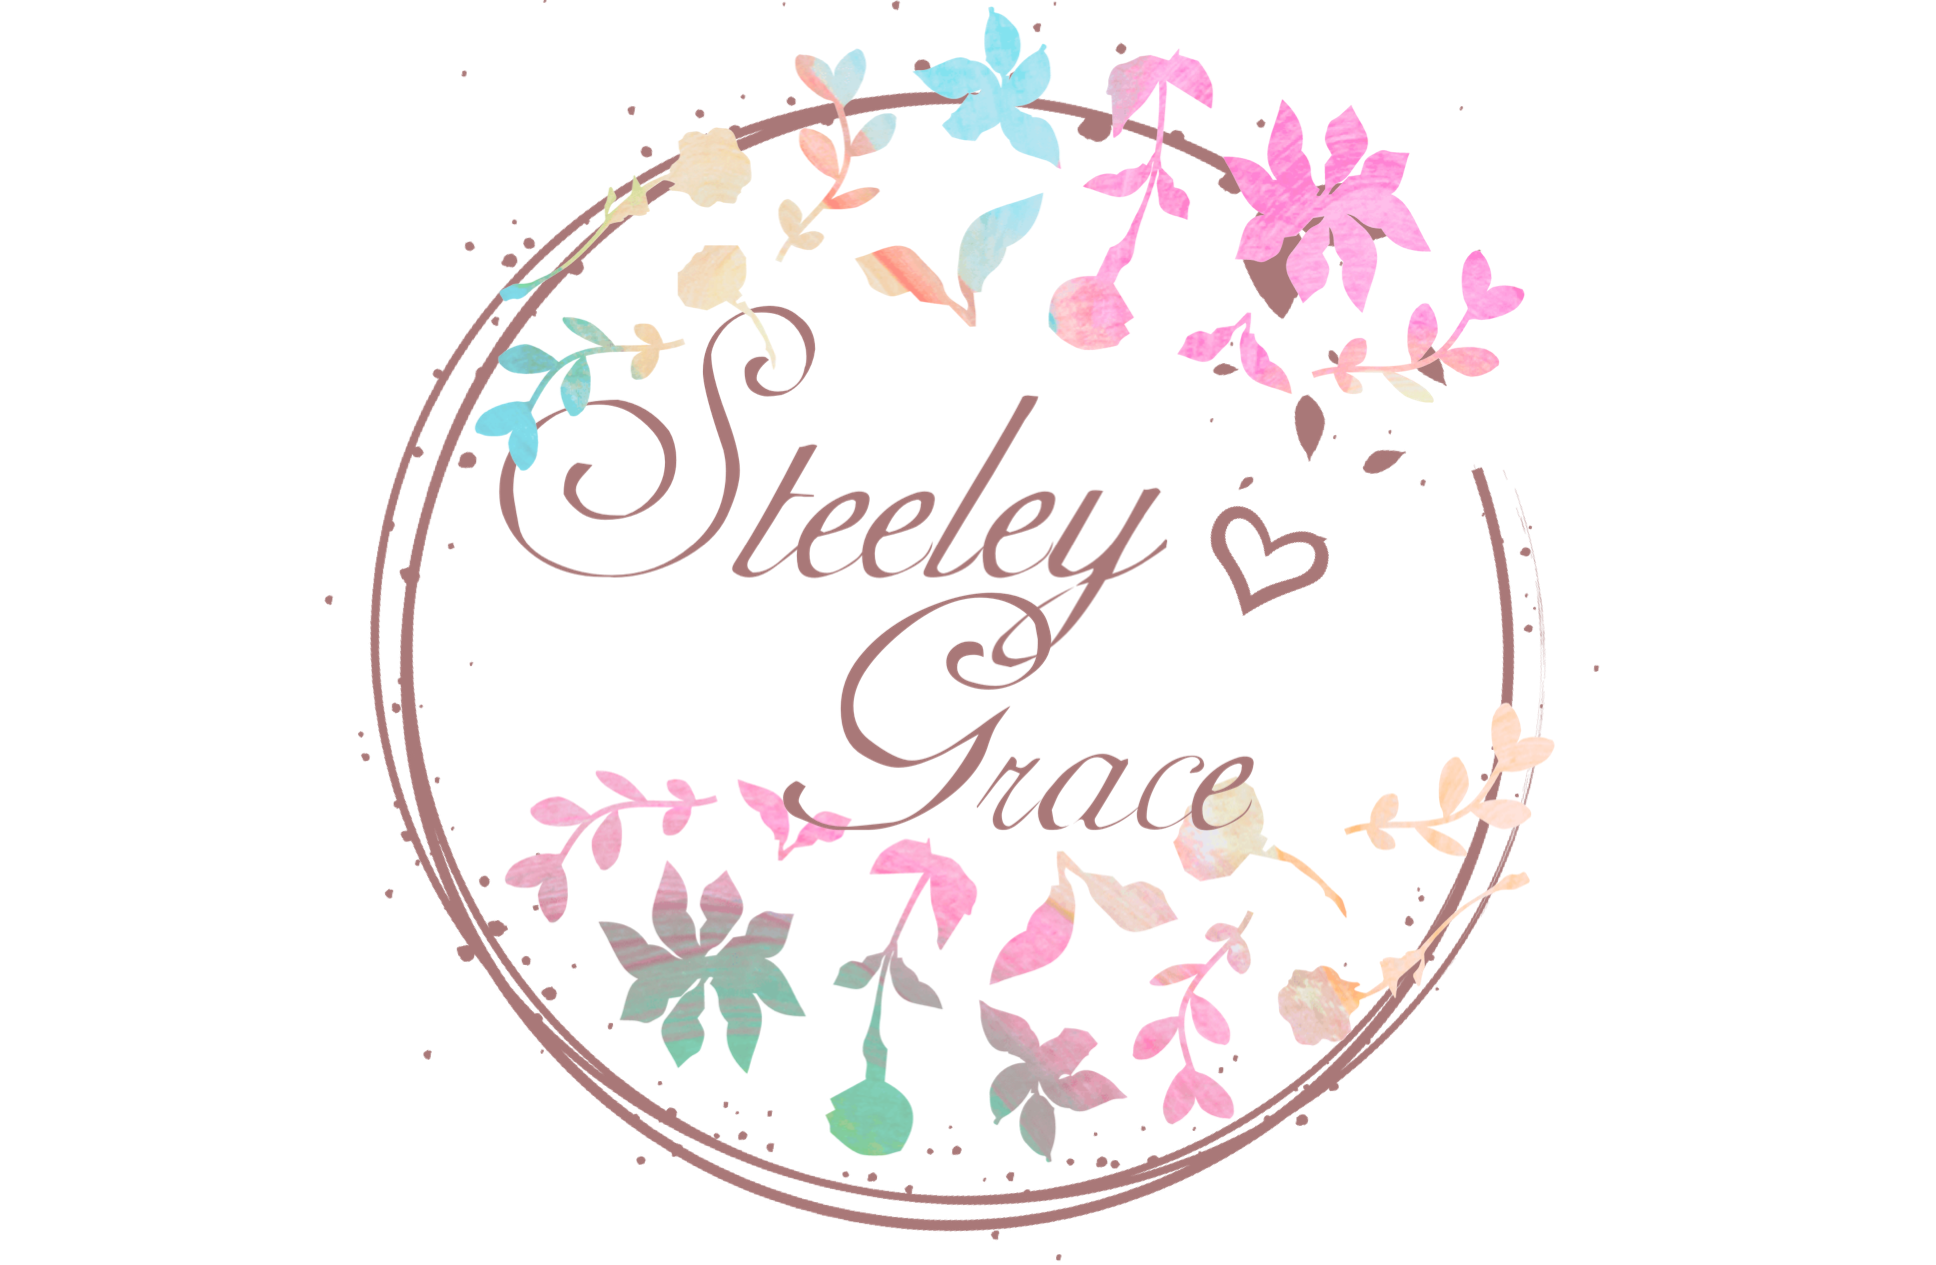 Steeley Grace